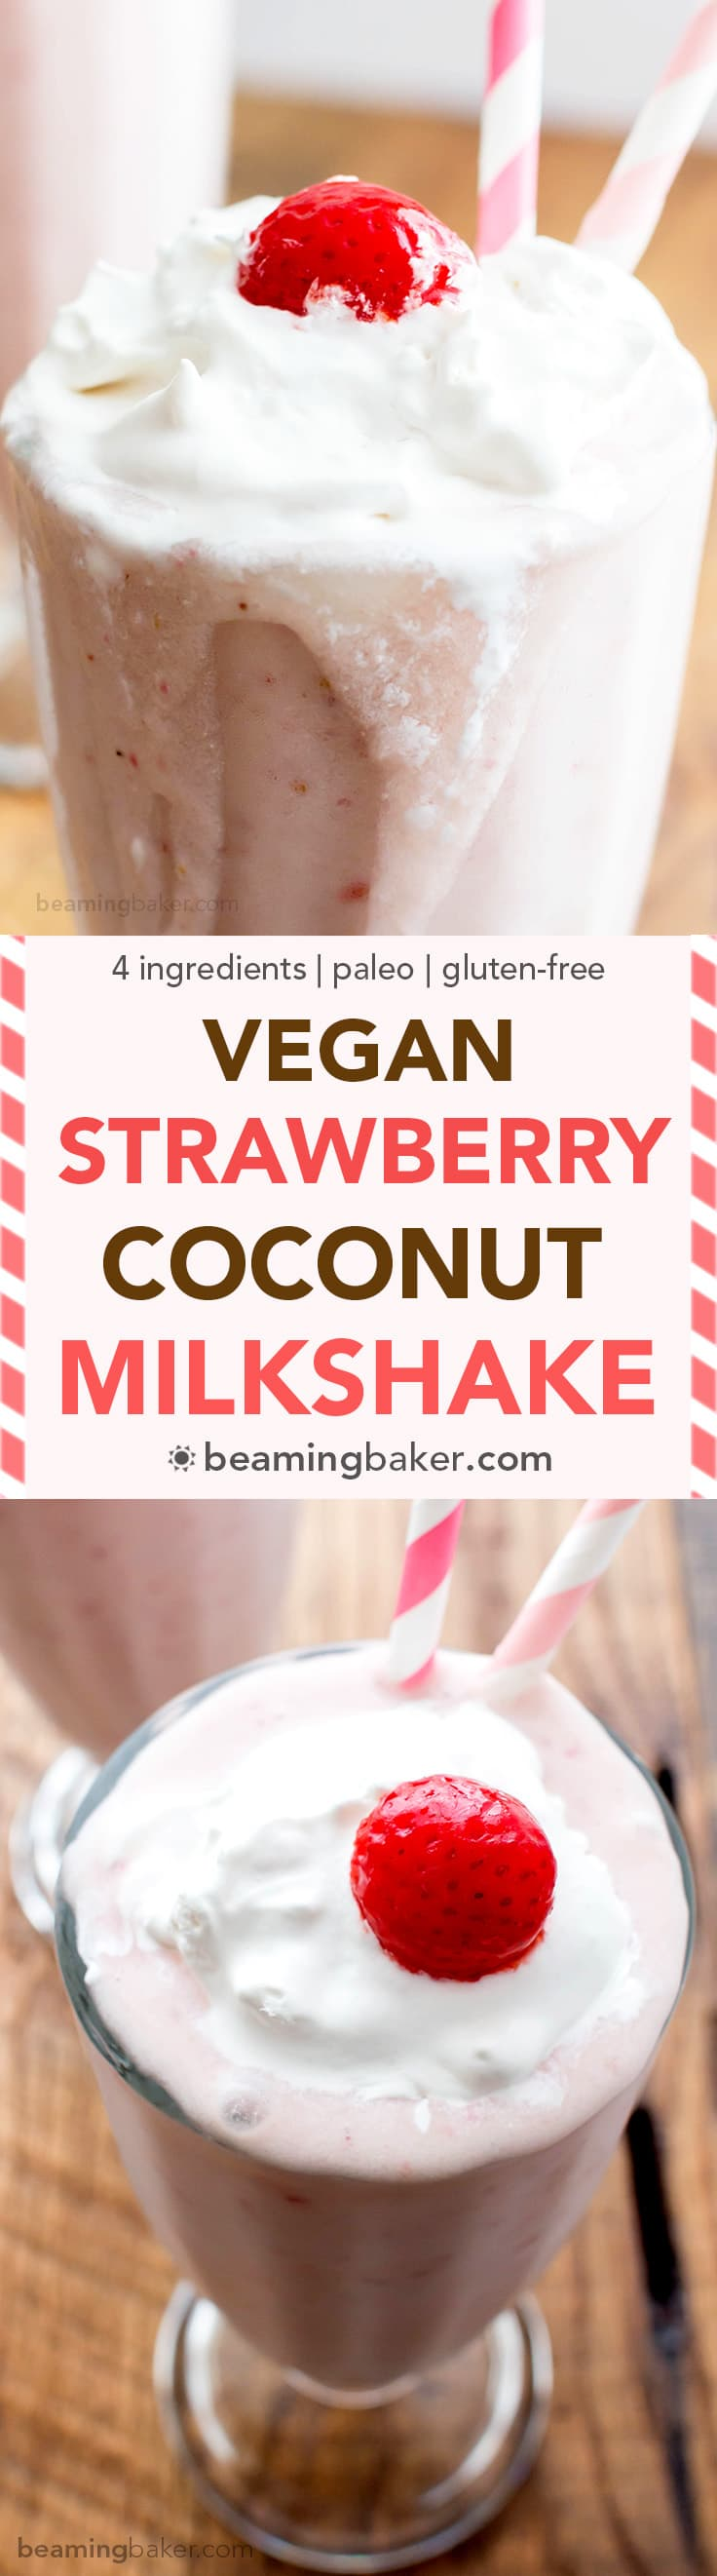 Vegan Strawberry Coconut Milkshake (V+GF): a 4 ingredient recipe for creamy and thick strawberry coconut milkshakes. #Vegan #GlutenFree #DairyFree #Paleo | BeamingBaker.com